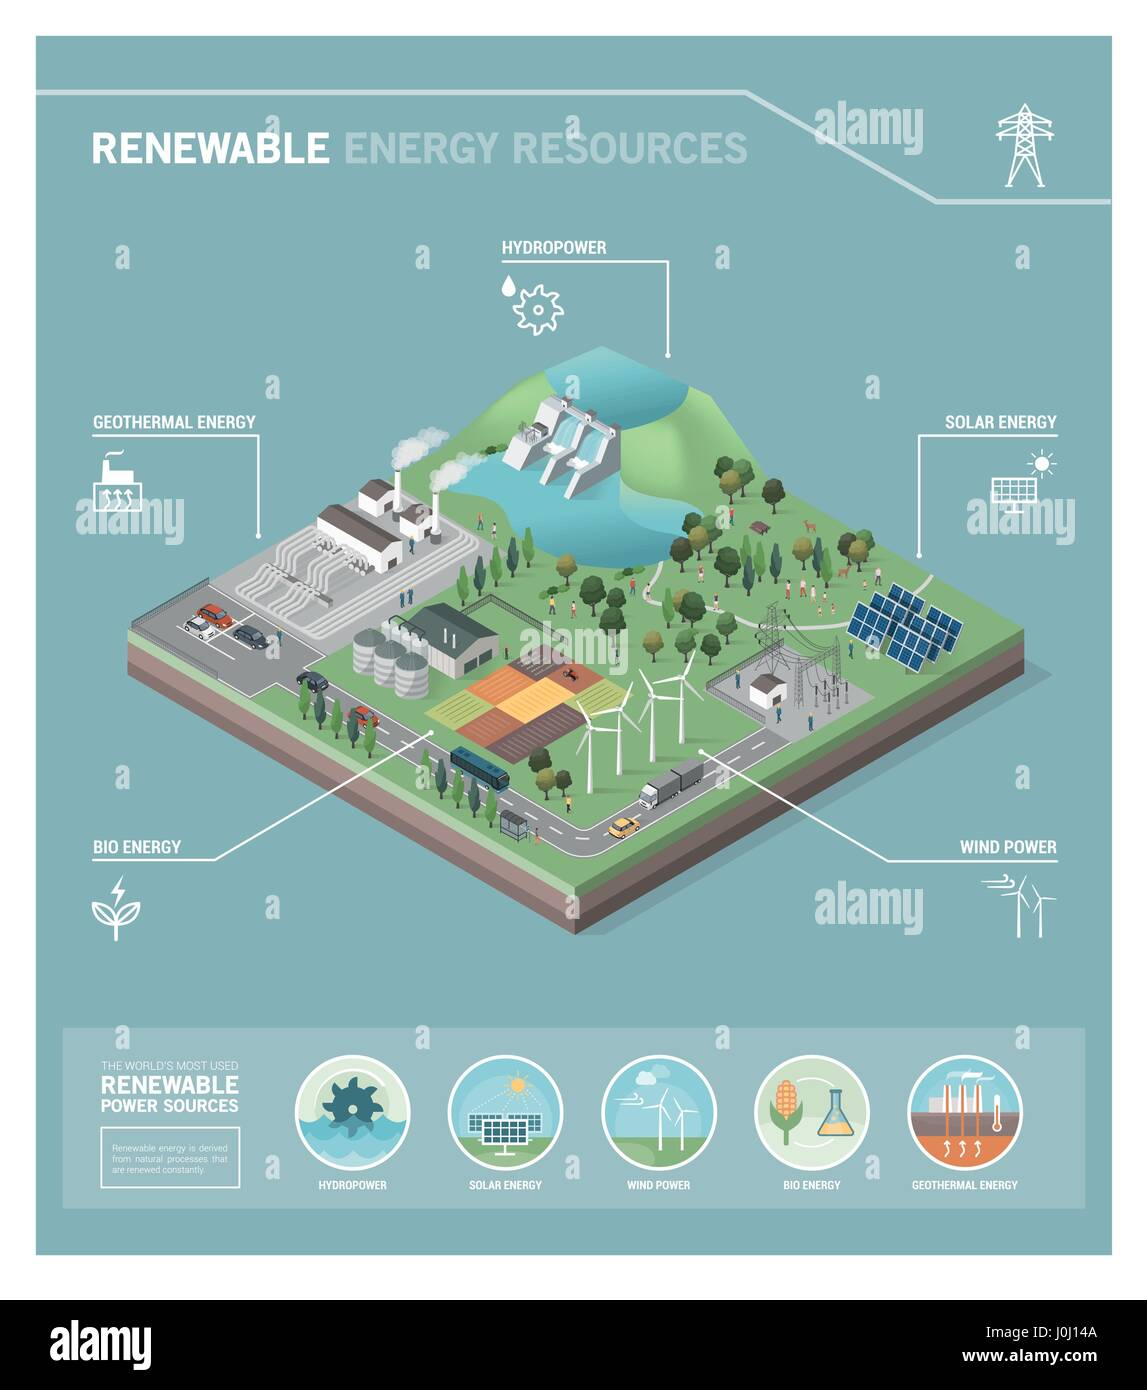 hight resolution of green power production and renewable energy resources hydropower geothermal power bio energy